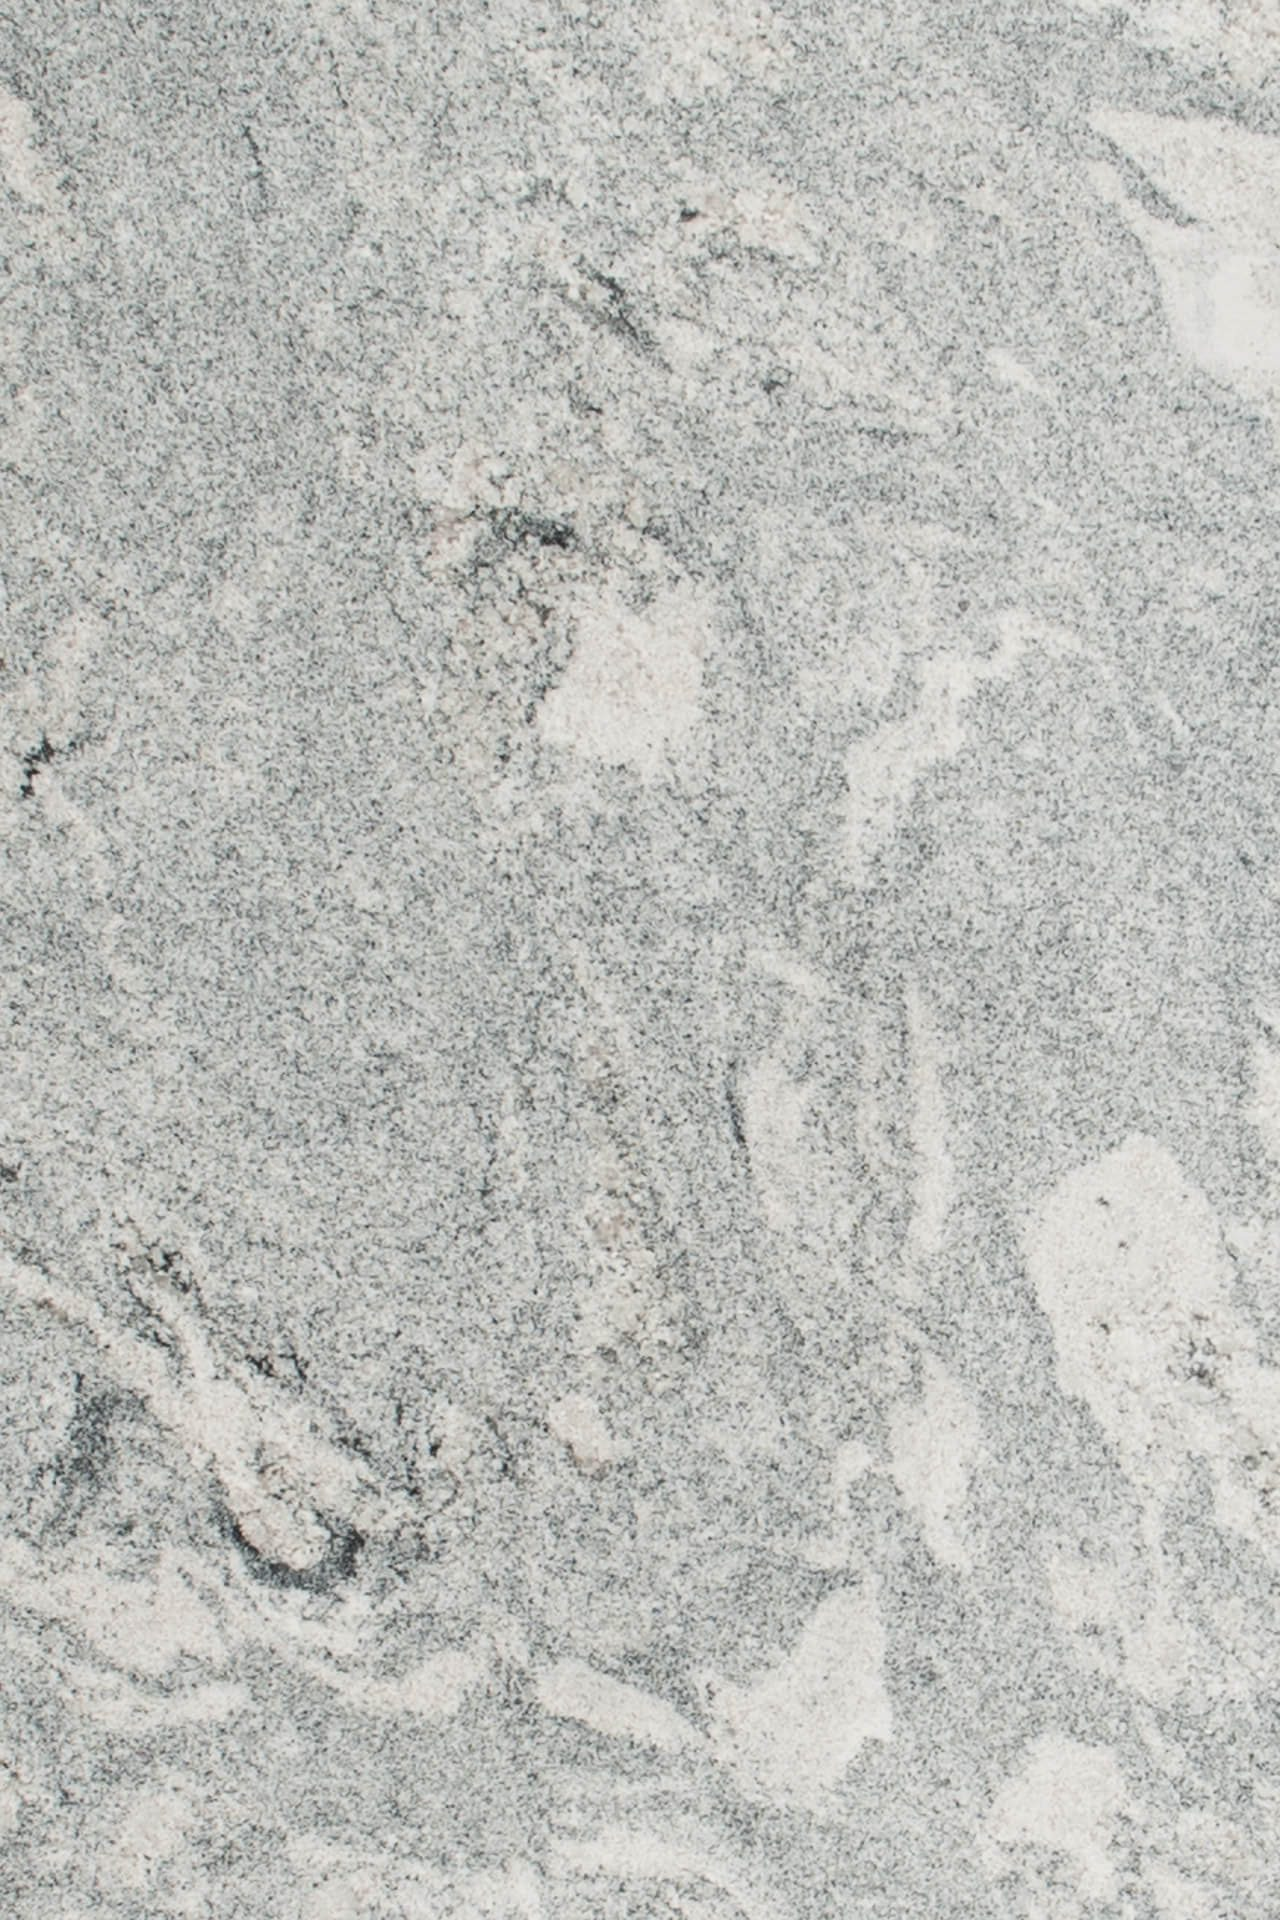 viscount white cu countertop - by Magnolia Countertops. A Countertop fabricator of Granite Countertops, Marble Countertops, and Quartz Countertops in Cookeville and Crossville TN.